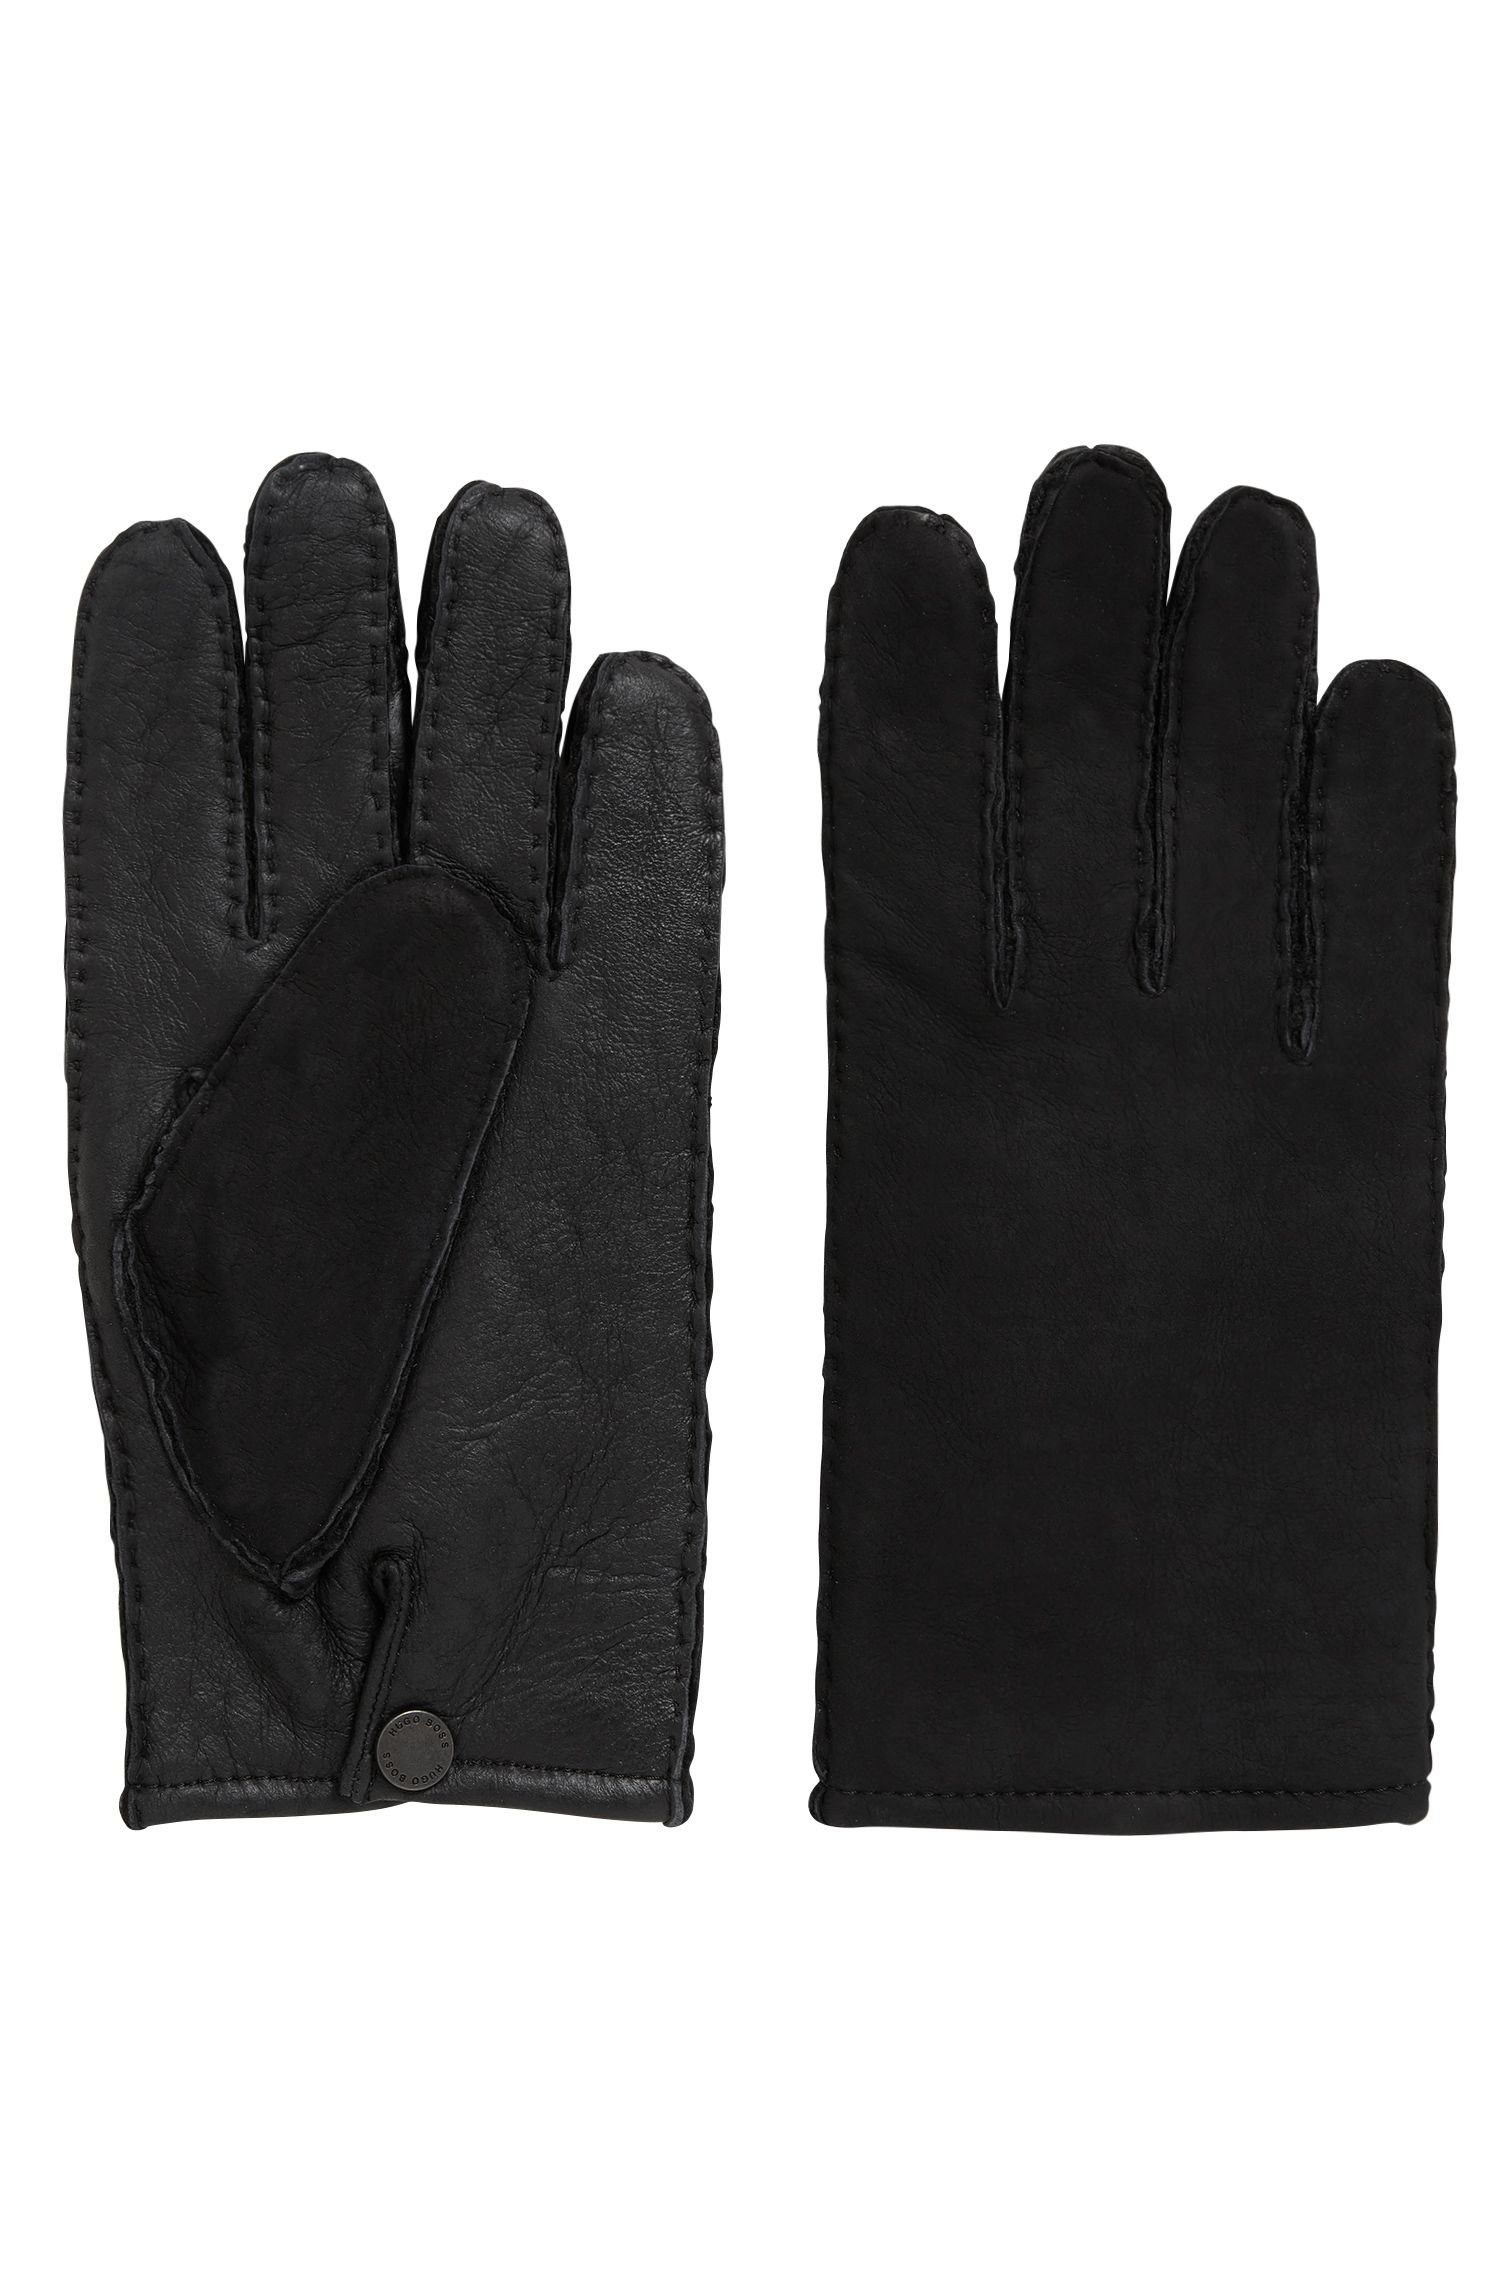 Lambskin gloves with raw-cut edges